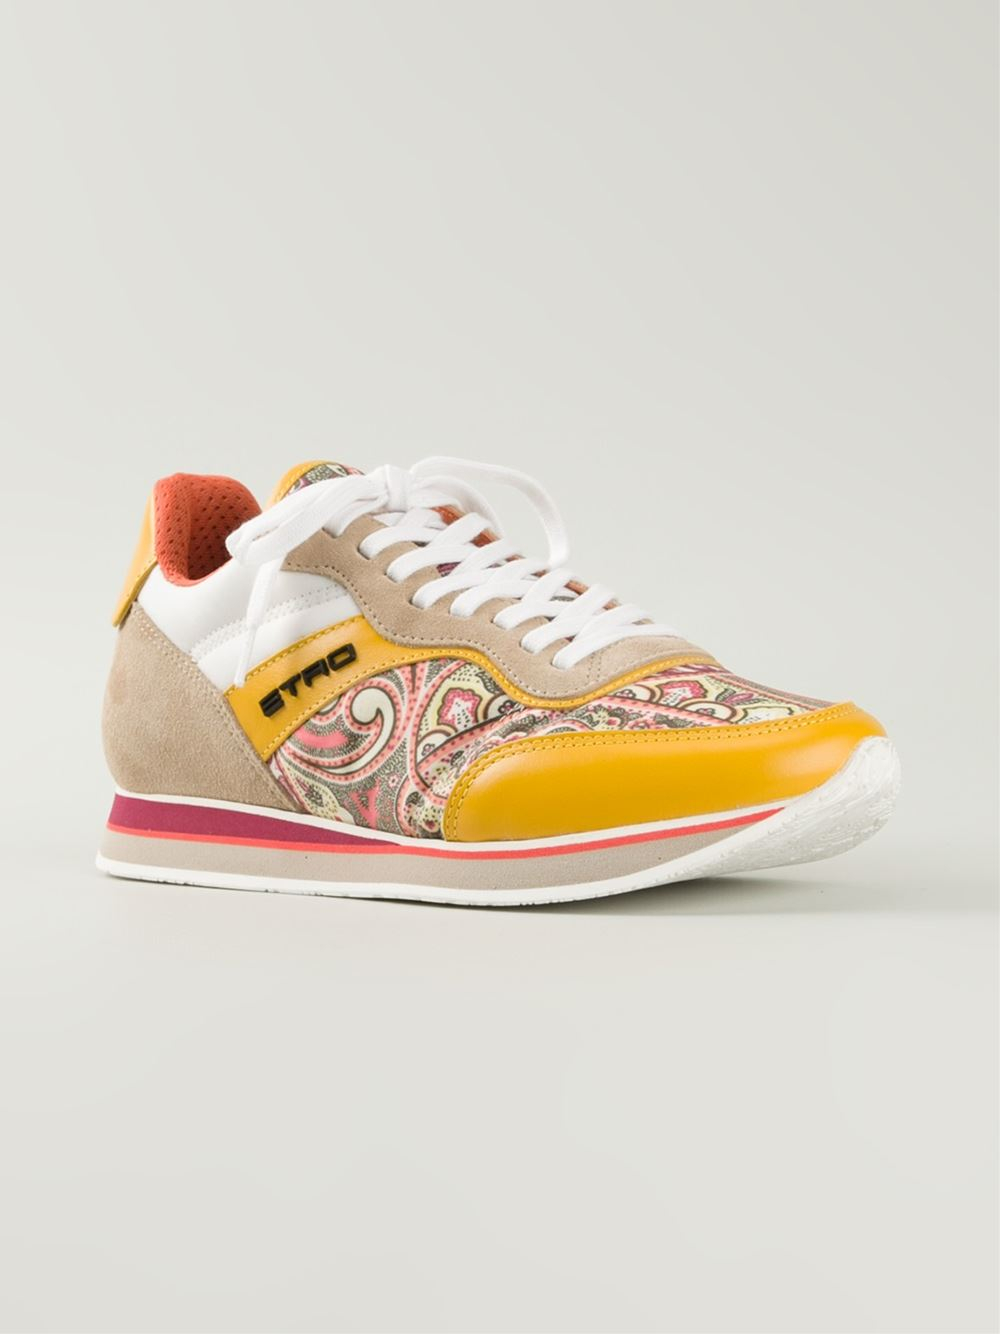 Paisley High Top Tennis Shoes